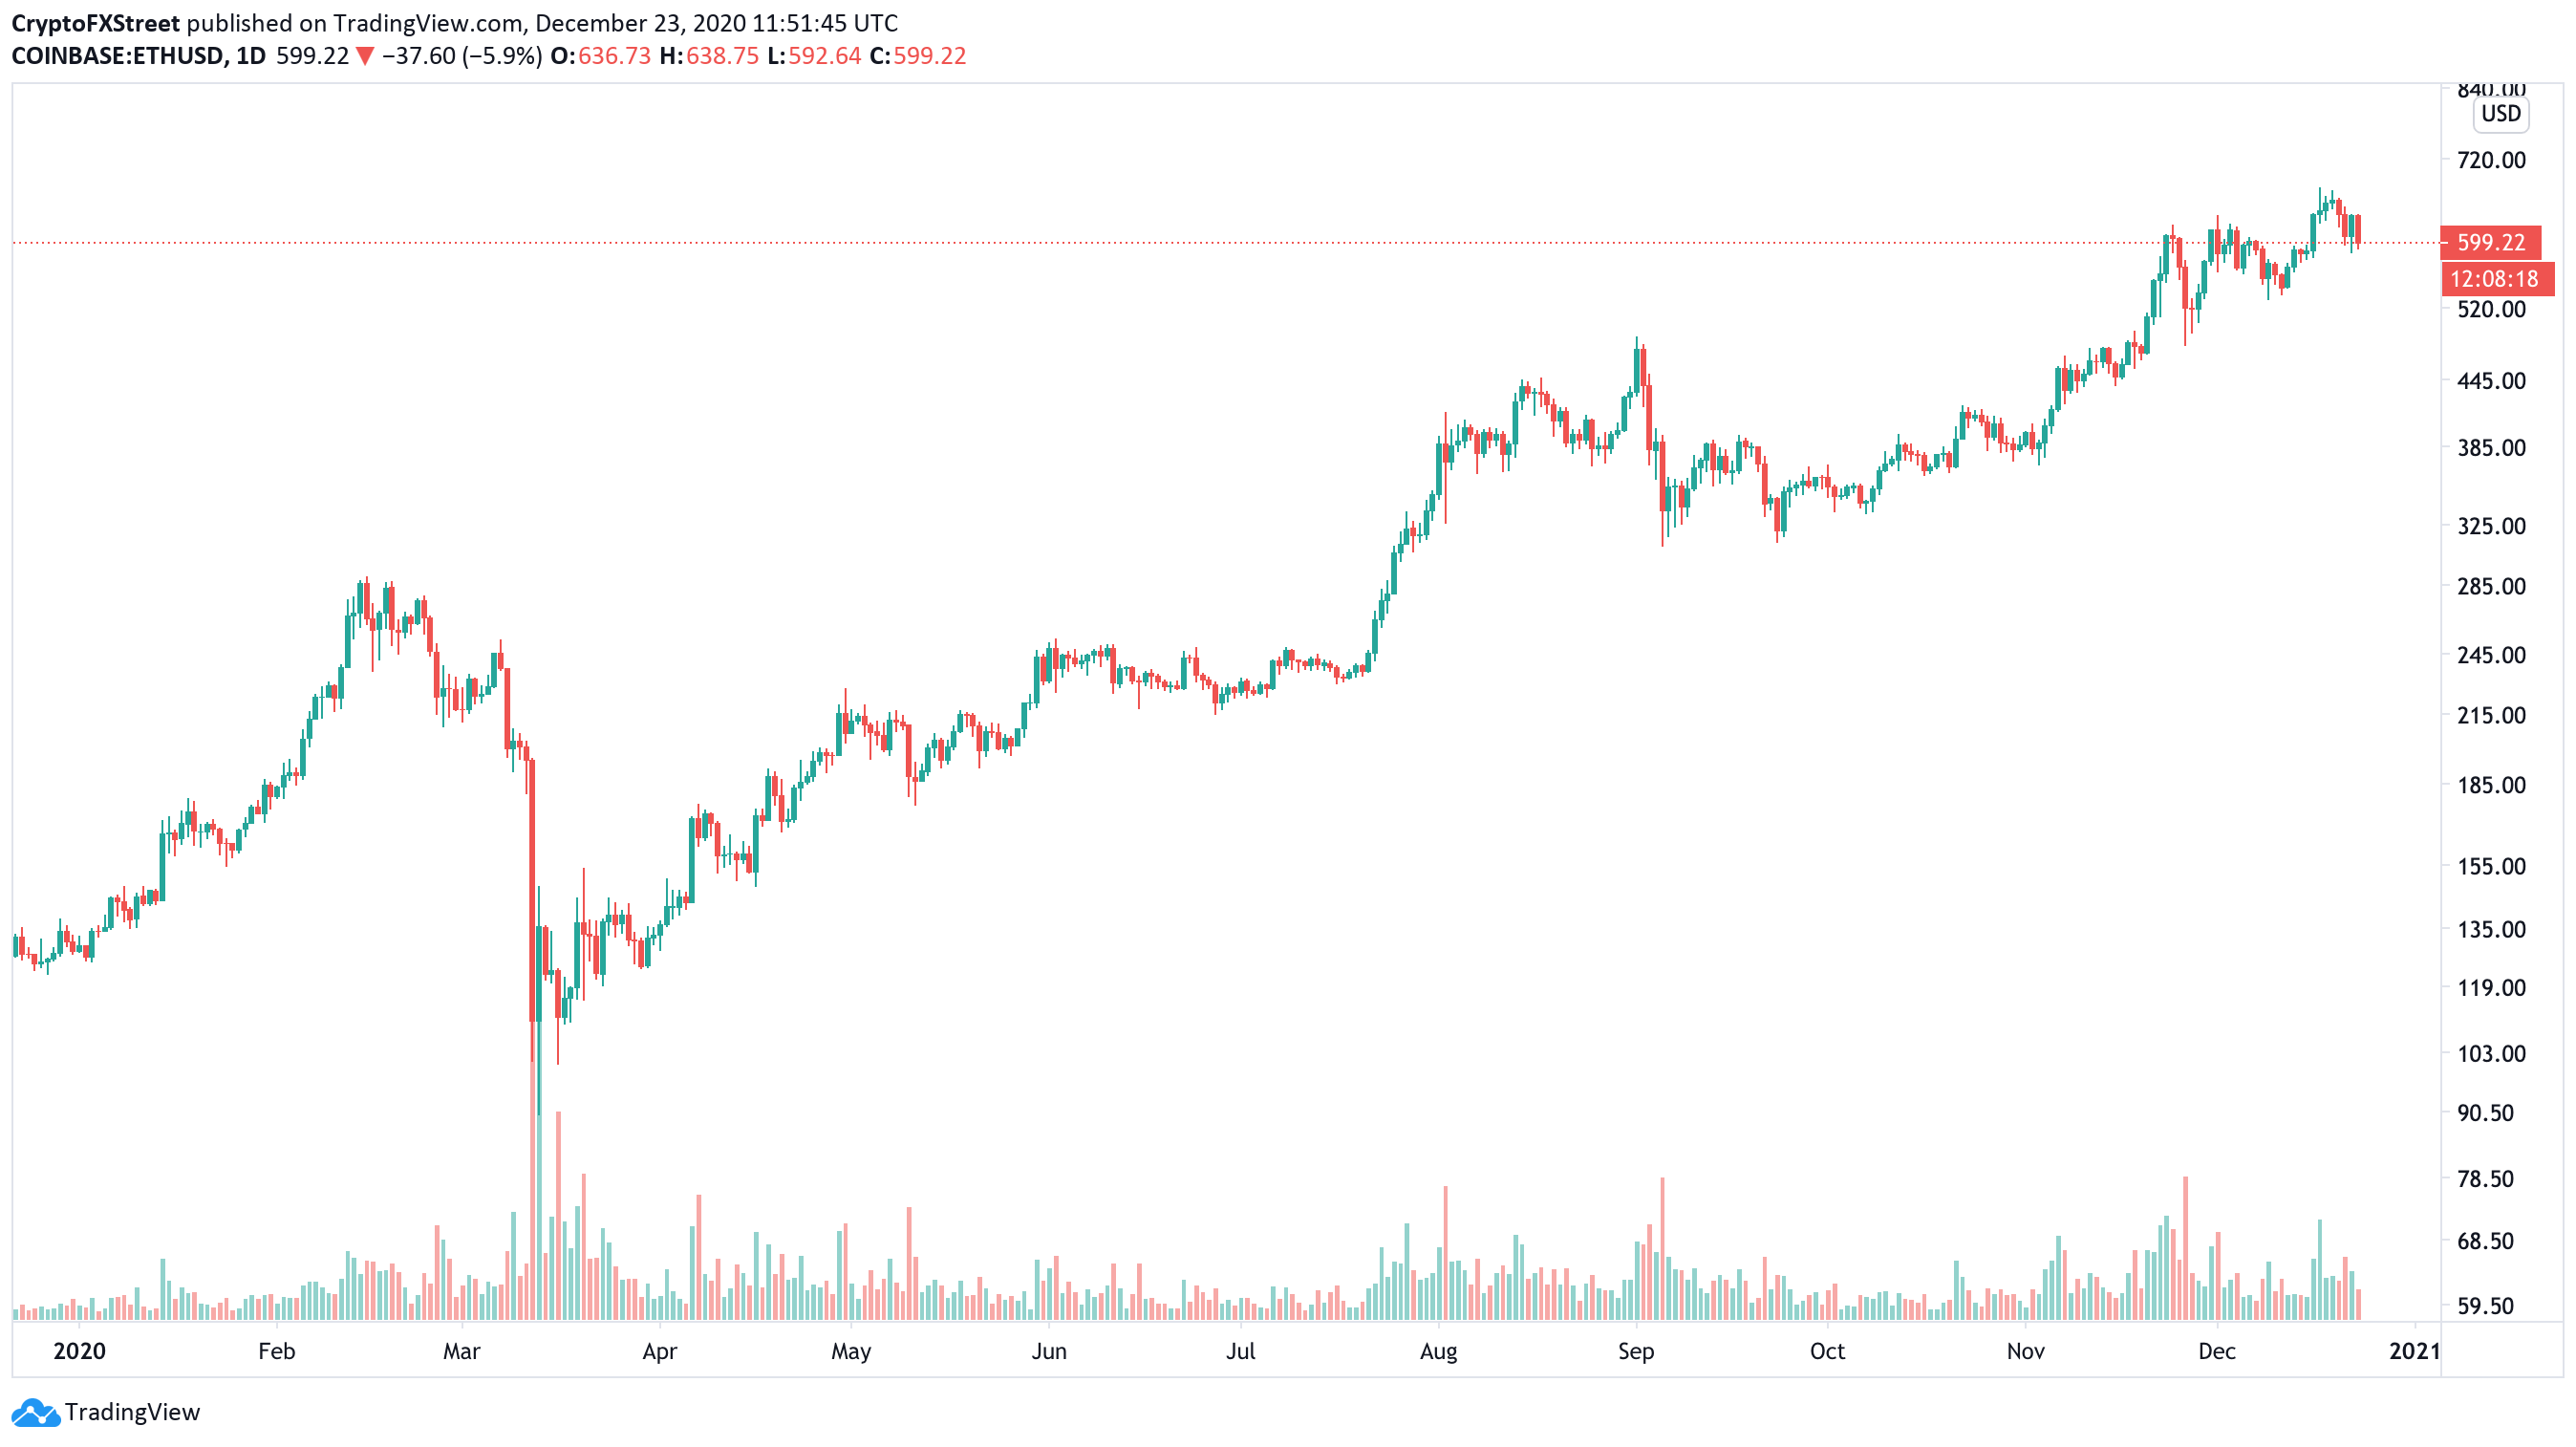 ETH/USD price forecast 2021 chart